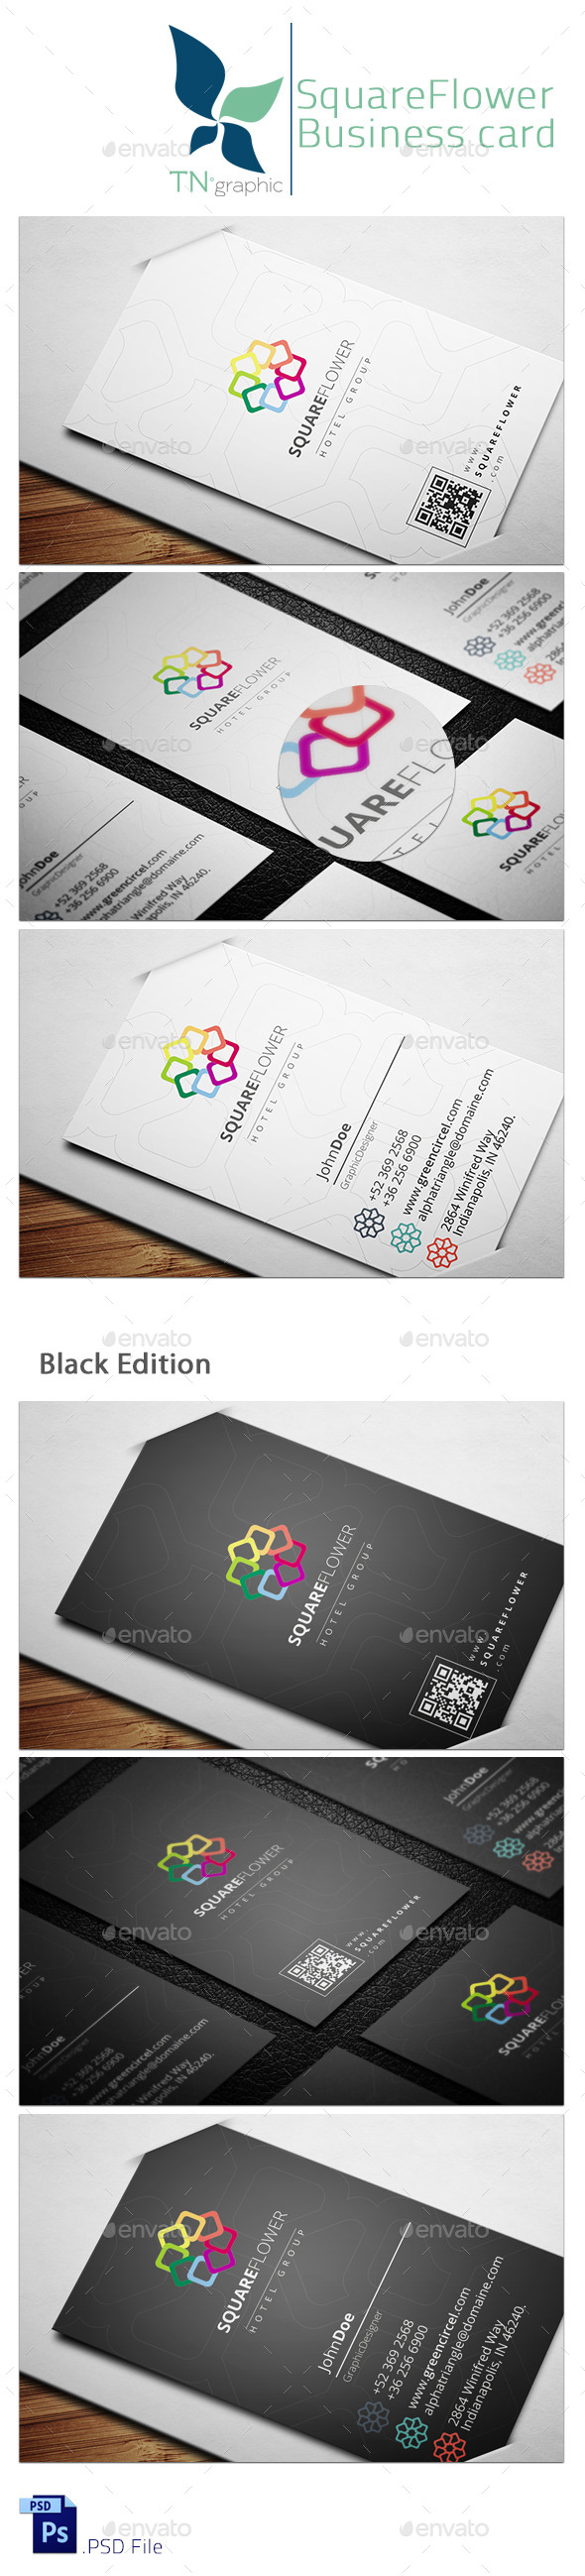 Square Flower Hotel Business Card